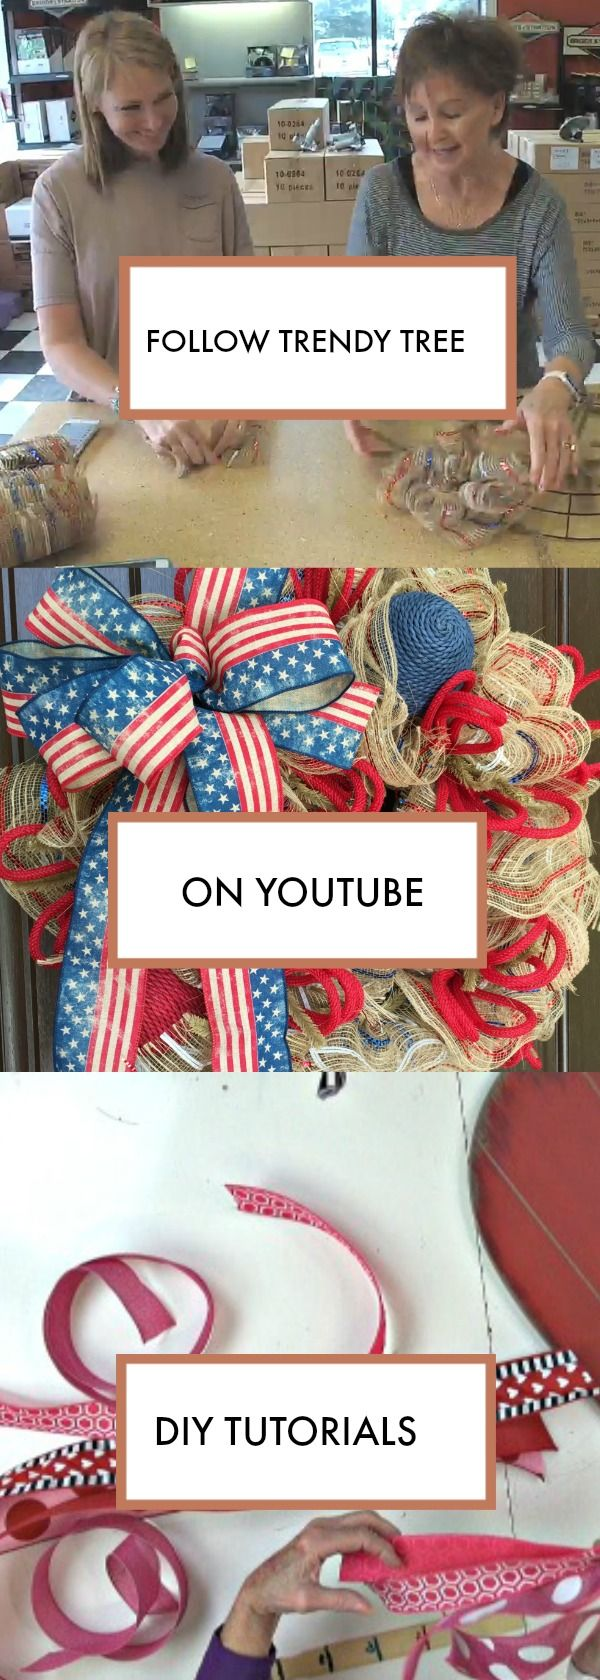 Follow us on Trendy Tree for DIY wreath tutorials and more!